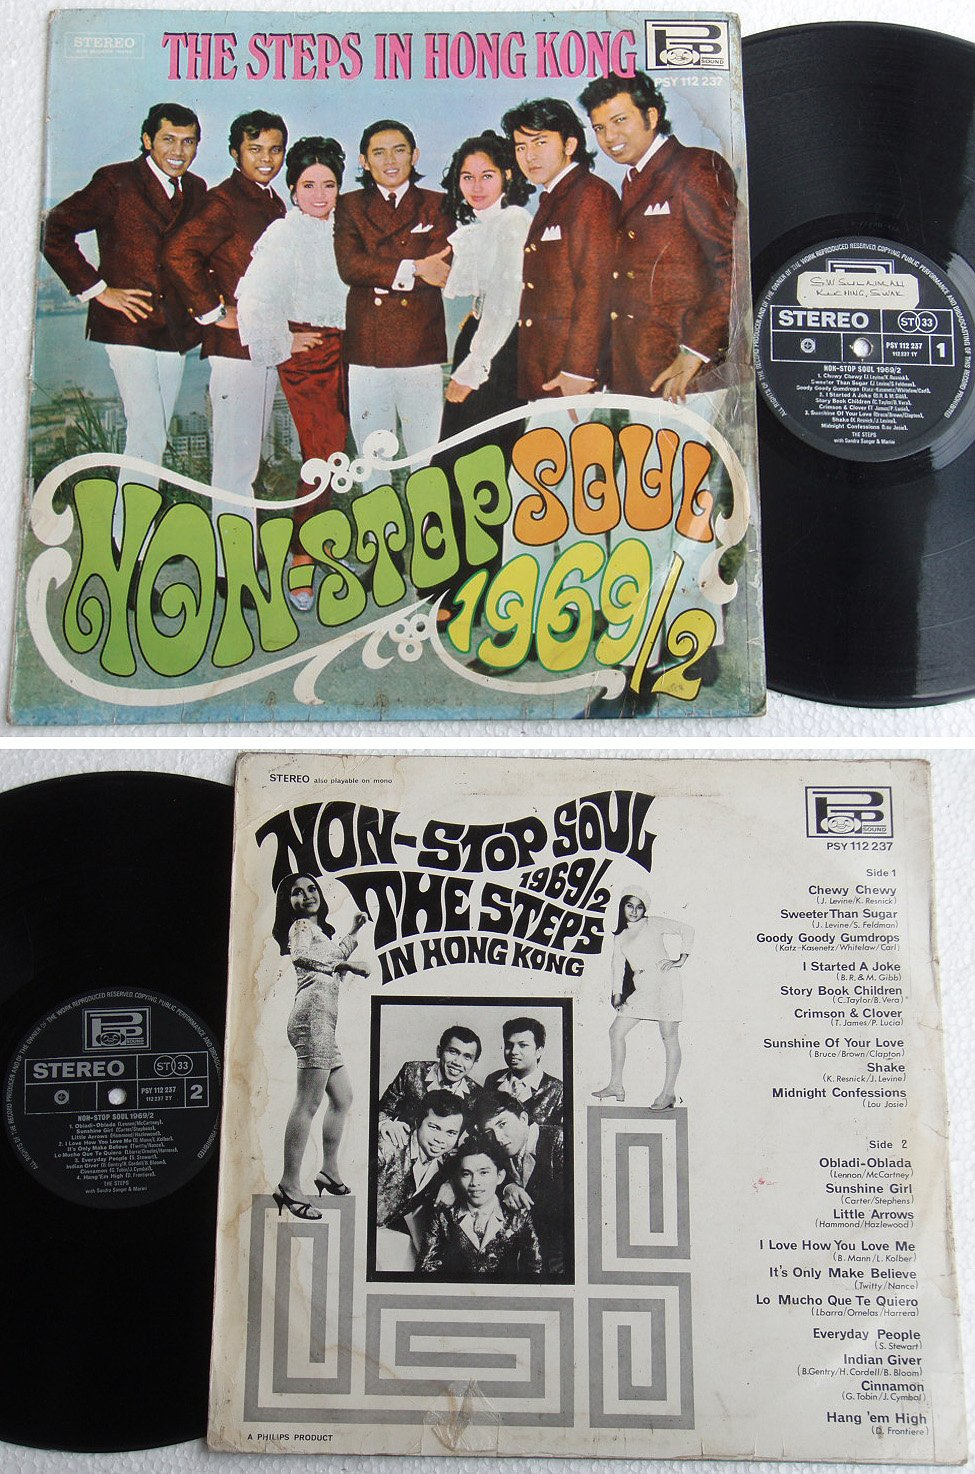 Indonesia Malay The STEPS Hong Kong soul LP #112237 (66)